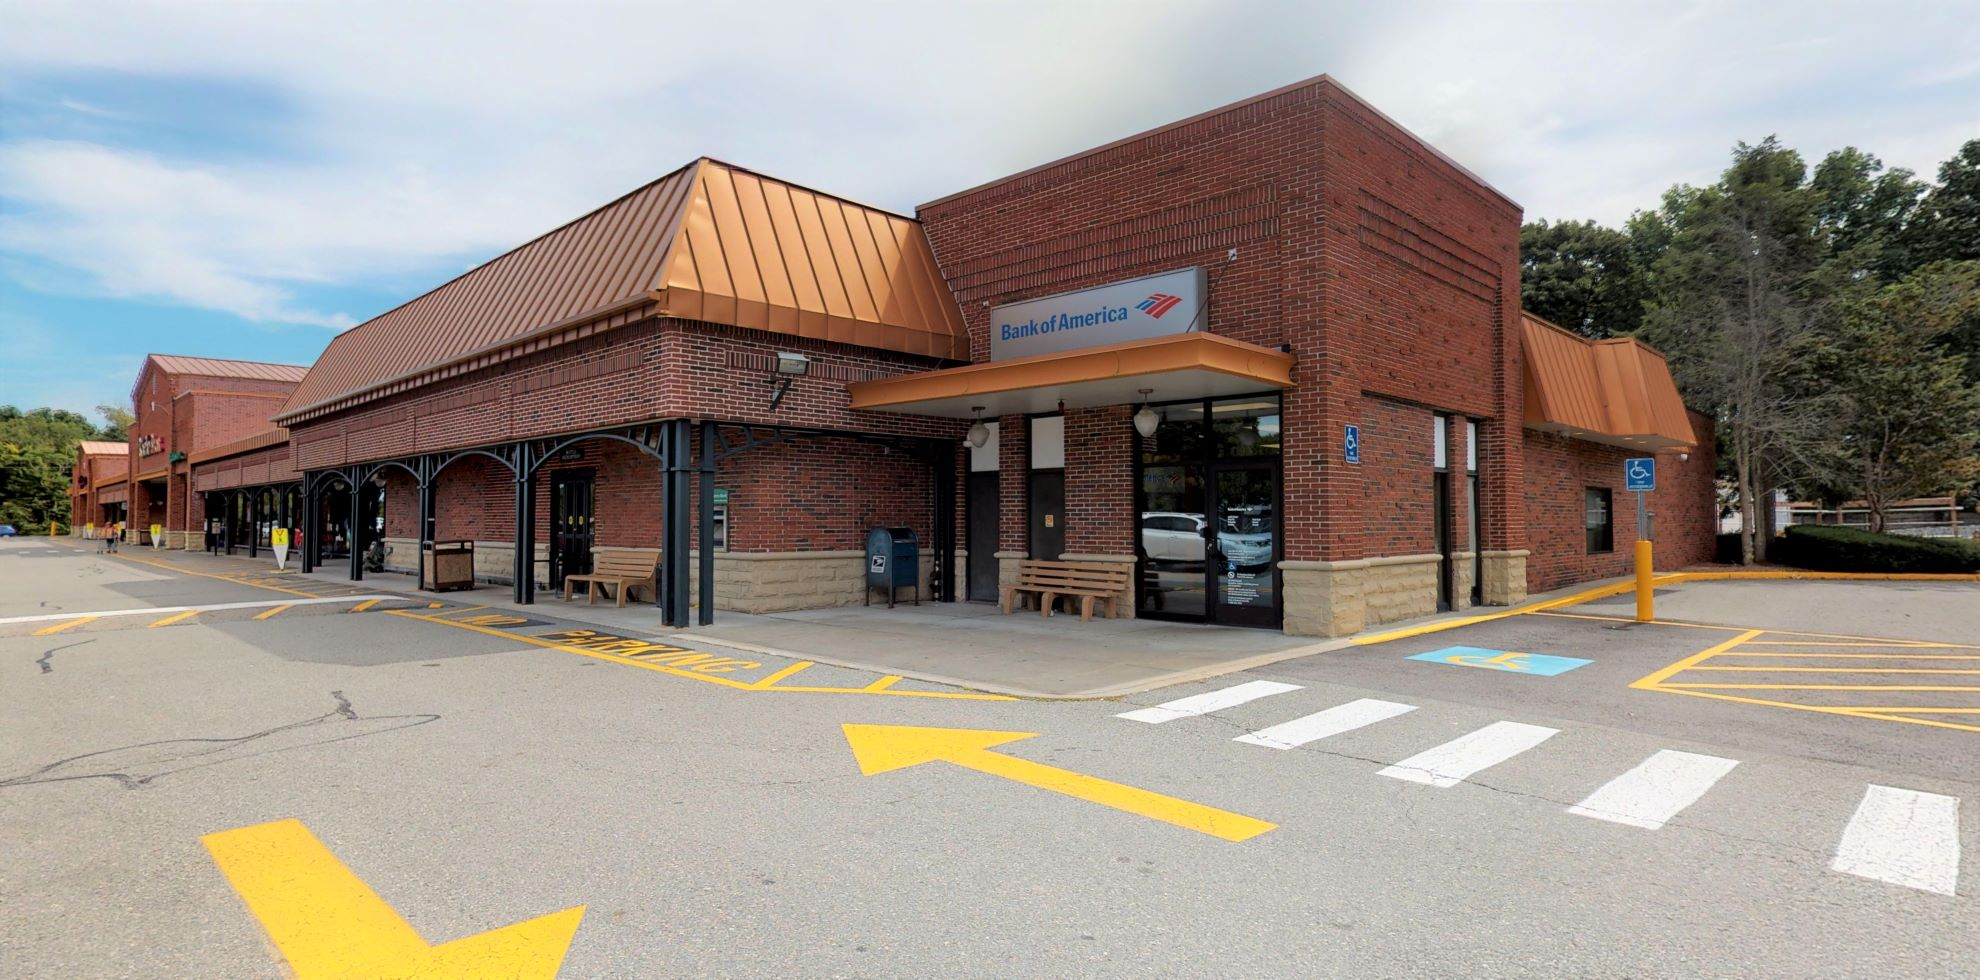 Bank of America financial center with walk-up ATM   152 W Central St, Natick, MA 01760